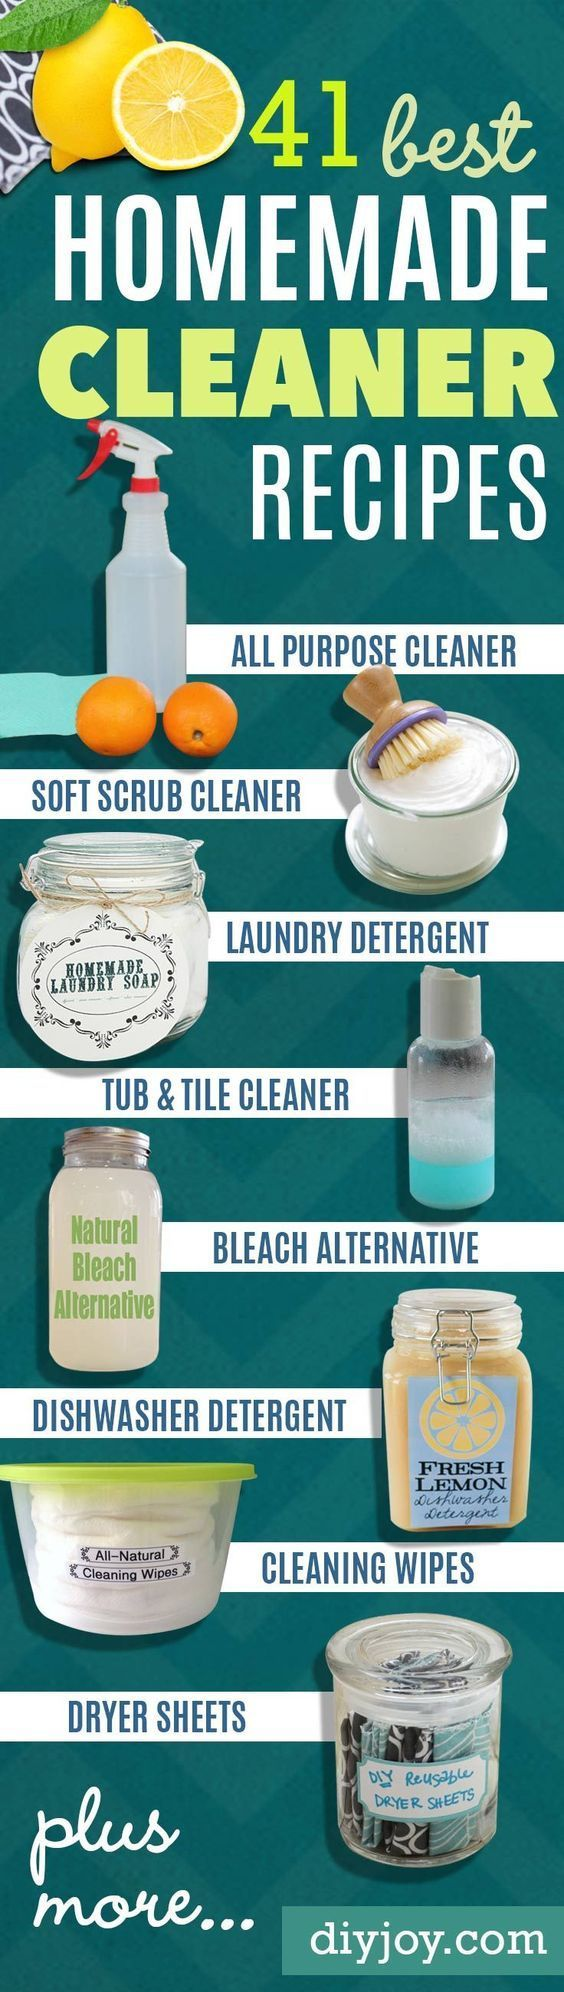 These 10 Home Tip And Hack Lists Are SO AWESOME! Iu0027ve Found So